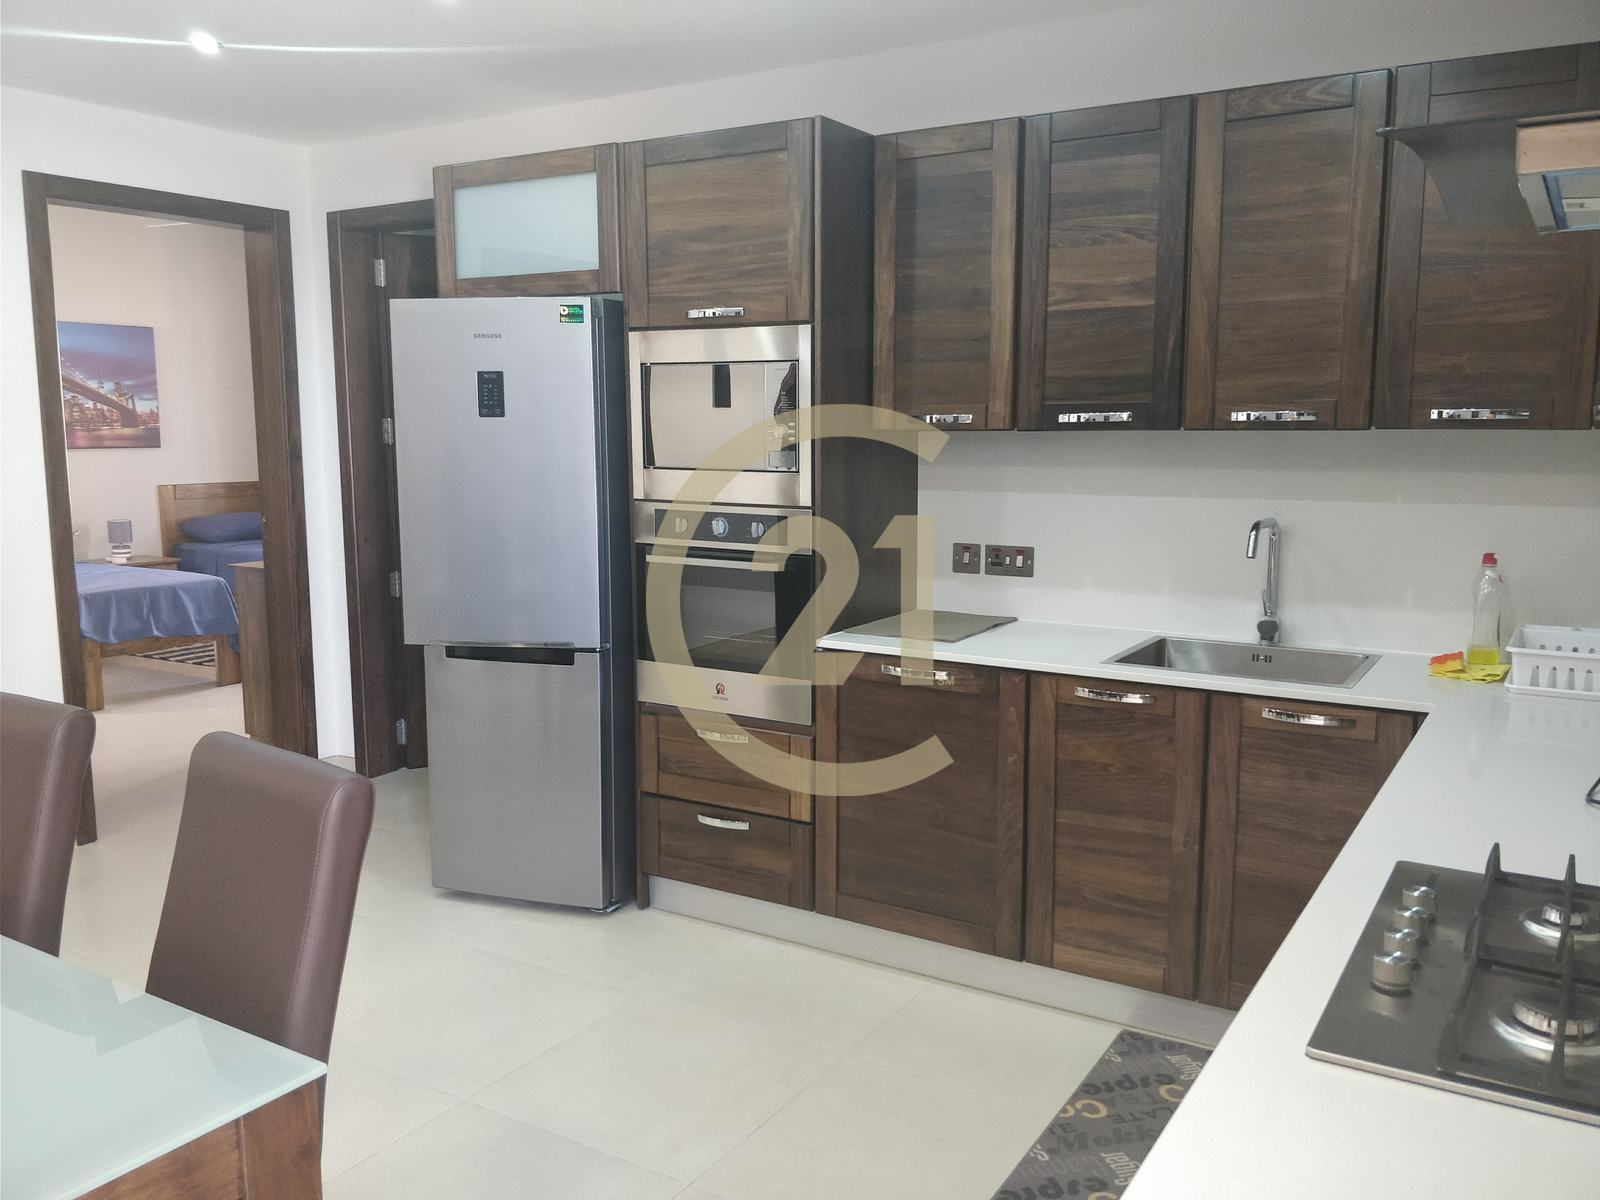 Three Bedroom Furnished Apartment For Rent in Xewkija ...